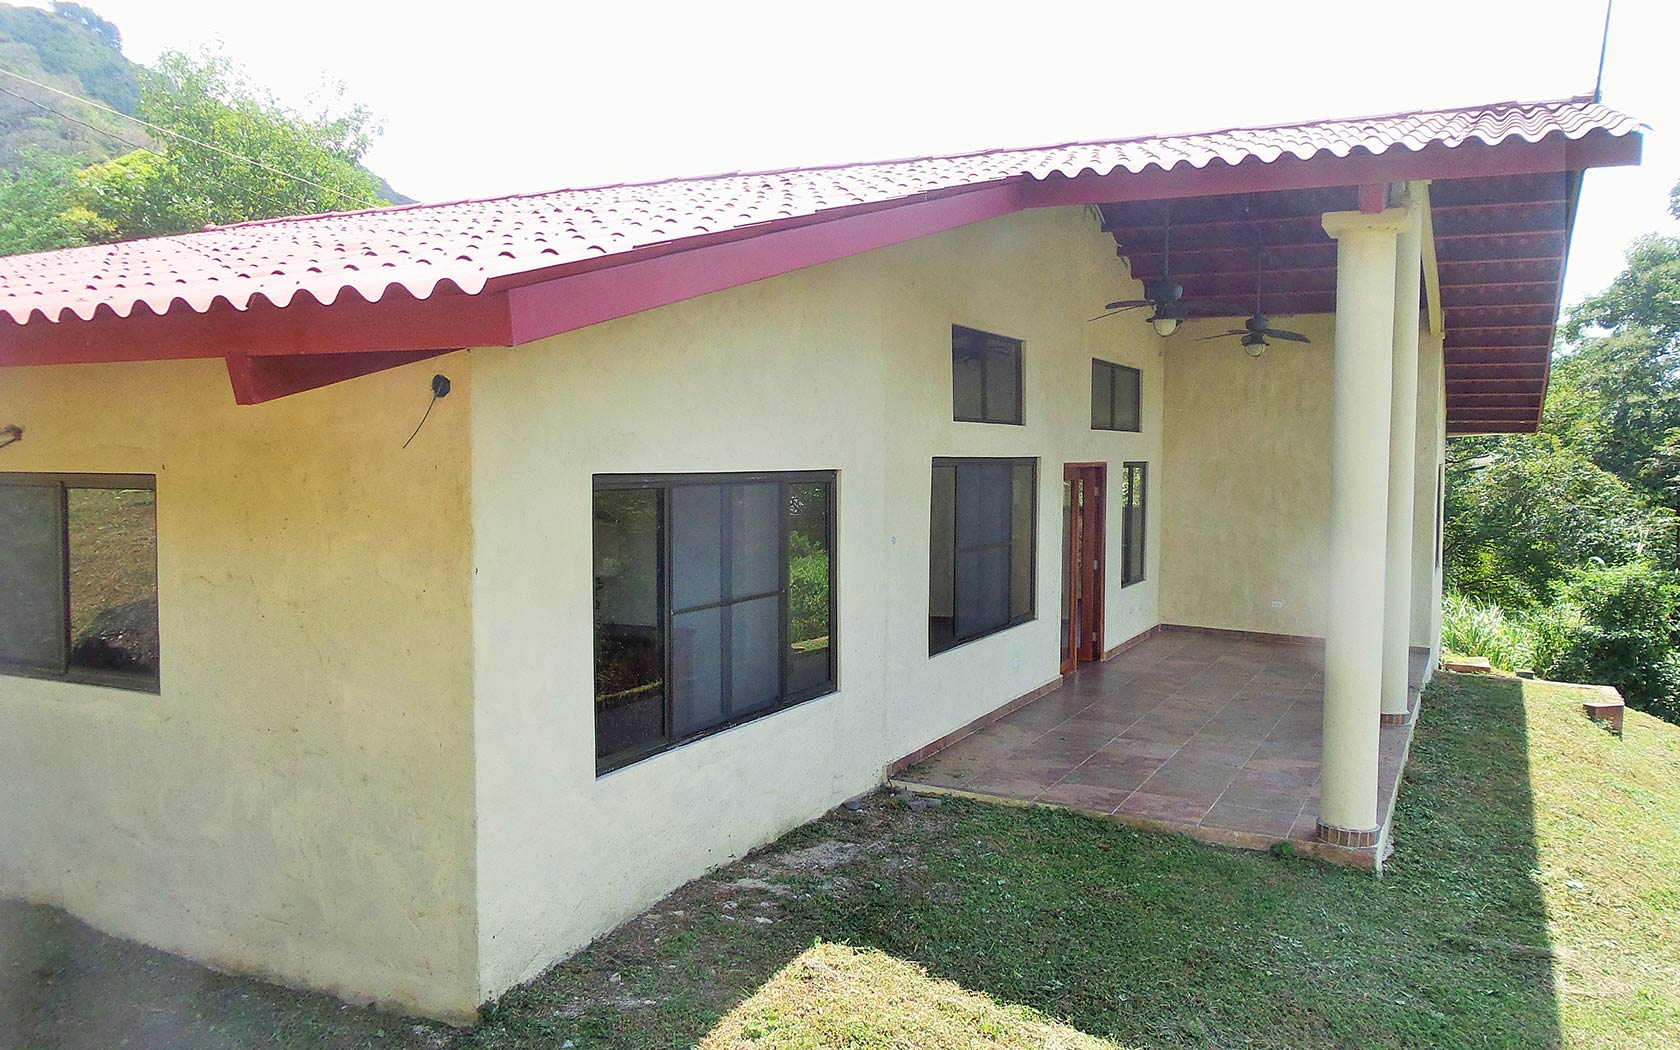 Panama-property-panamaequitymountain-home-near-river-altos-del-maria-9.jpg